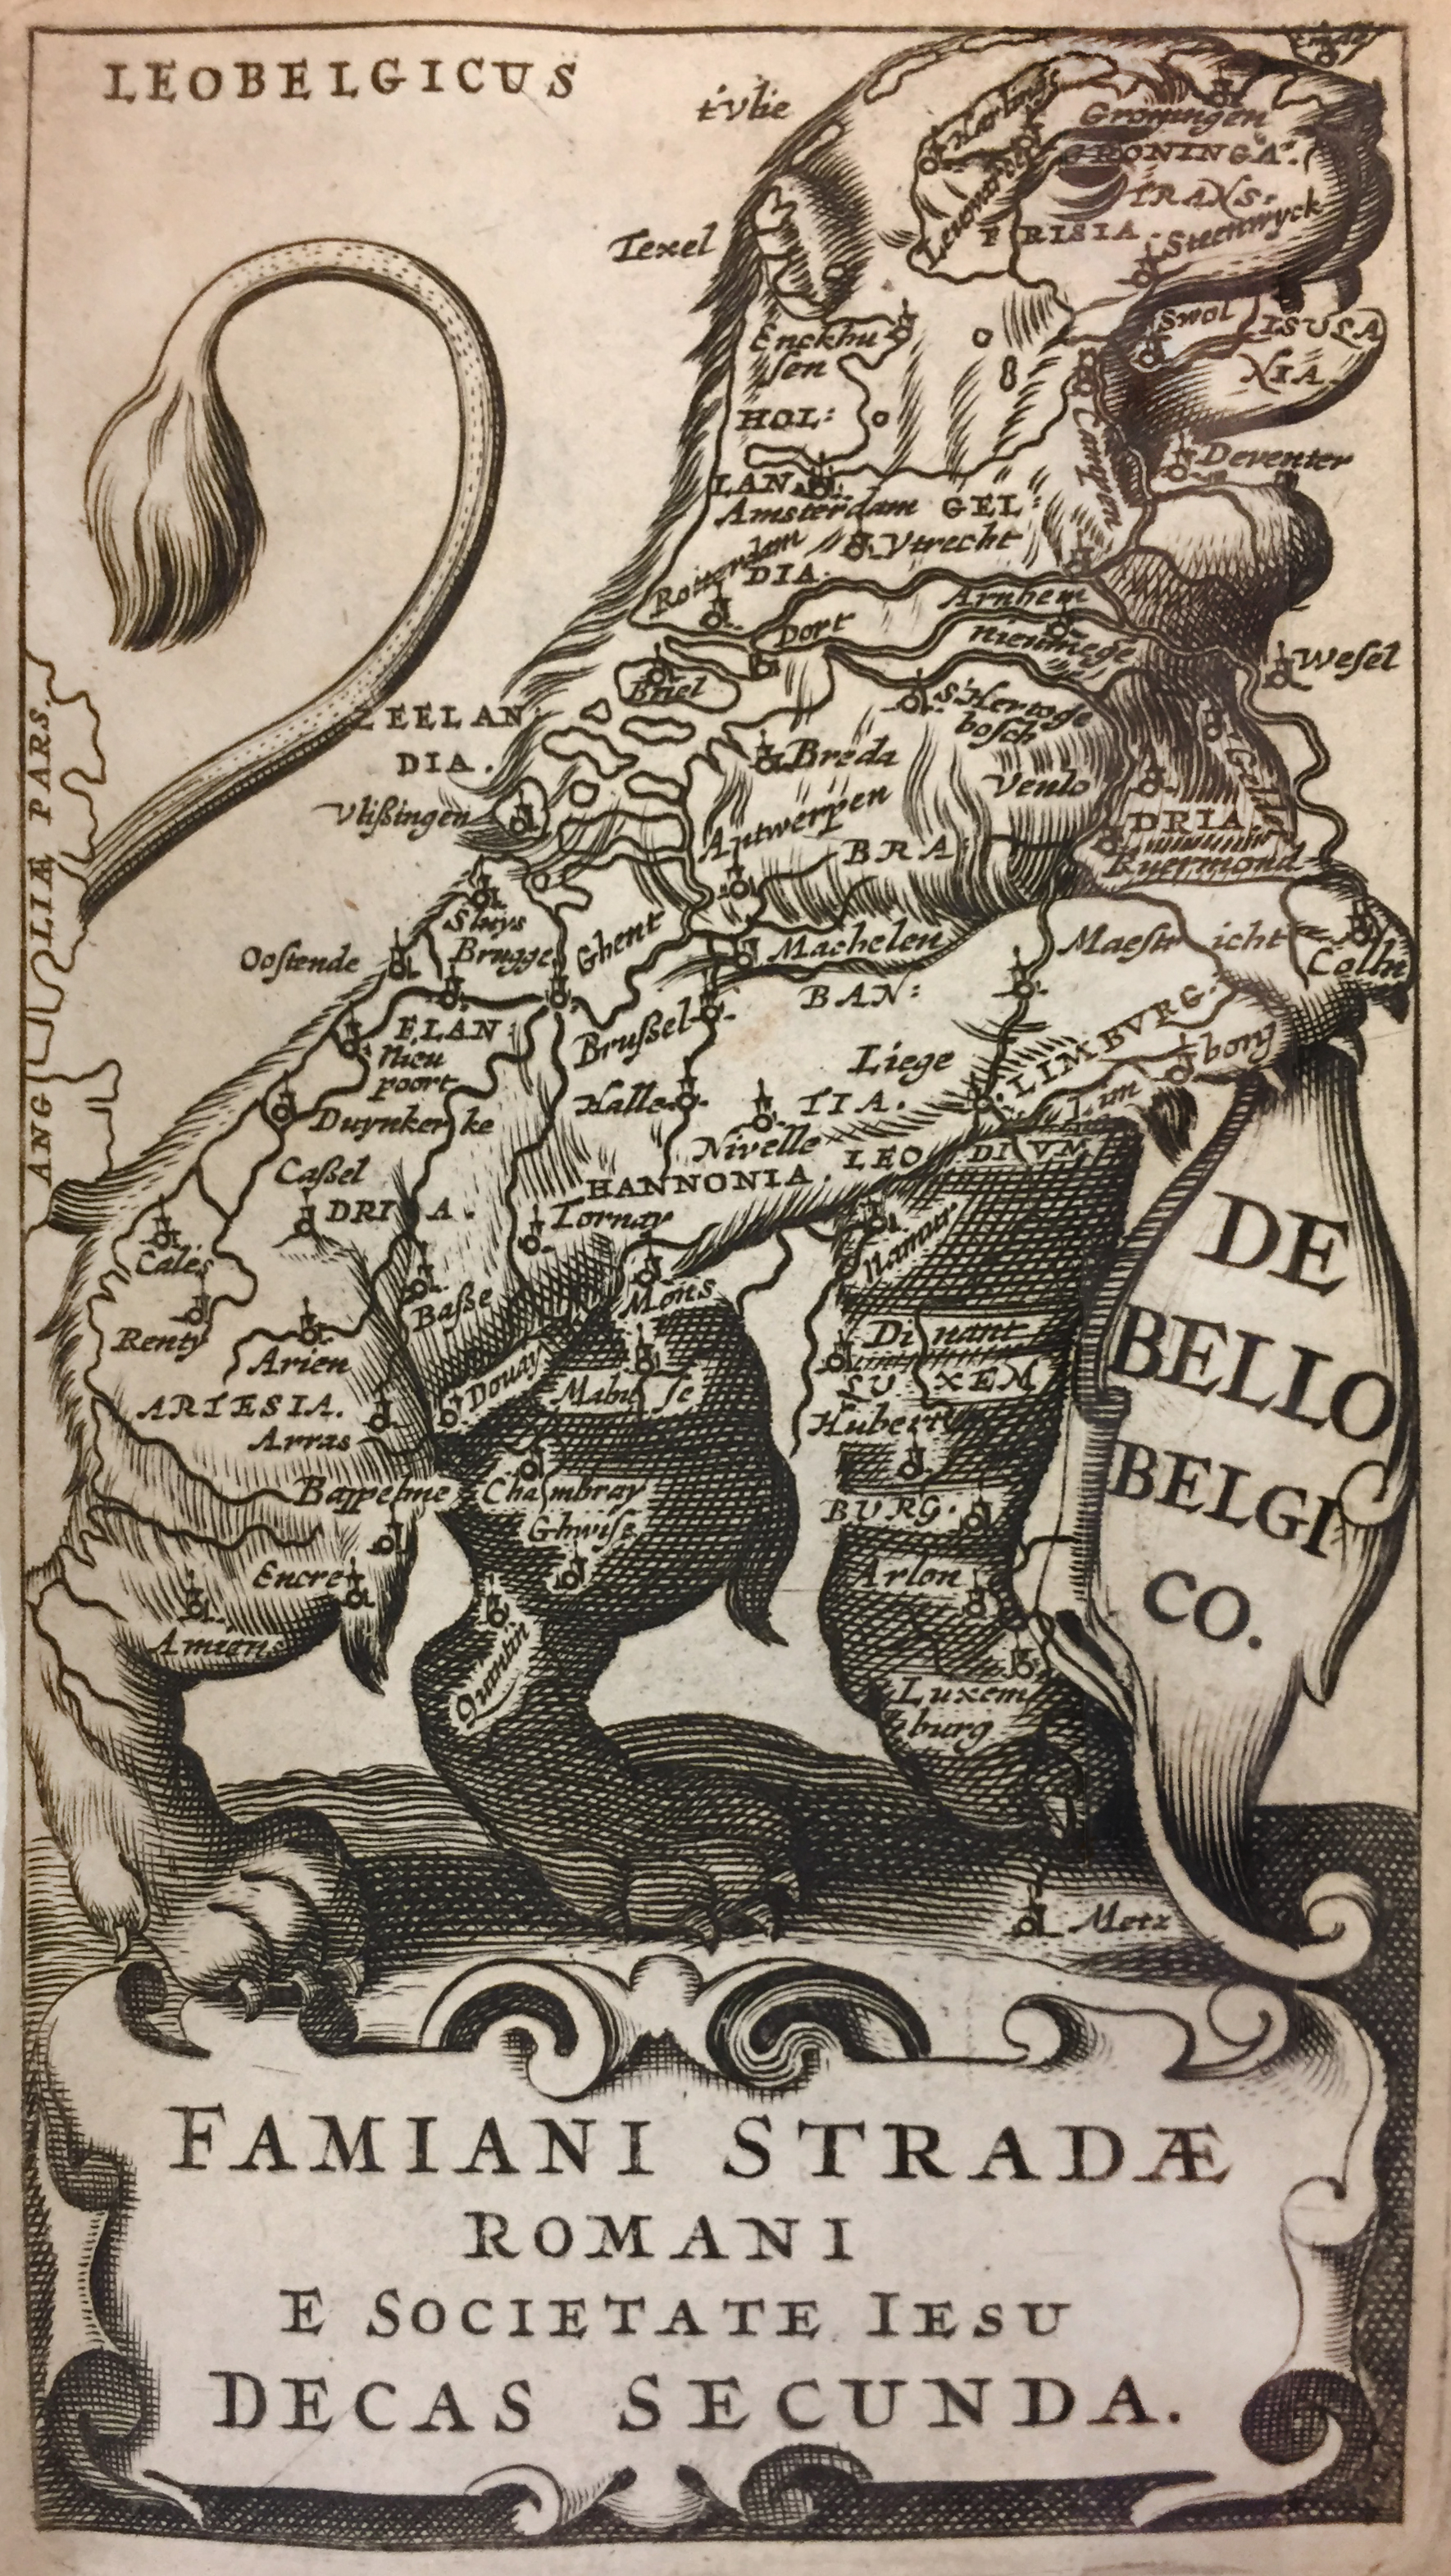 A Leo Belgicus Map from a book by Famiano Strada, 1658